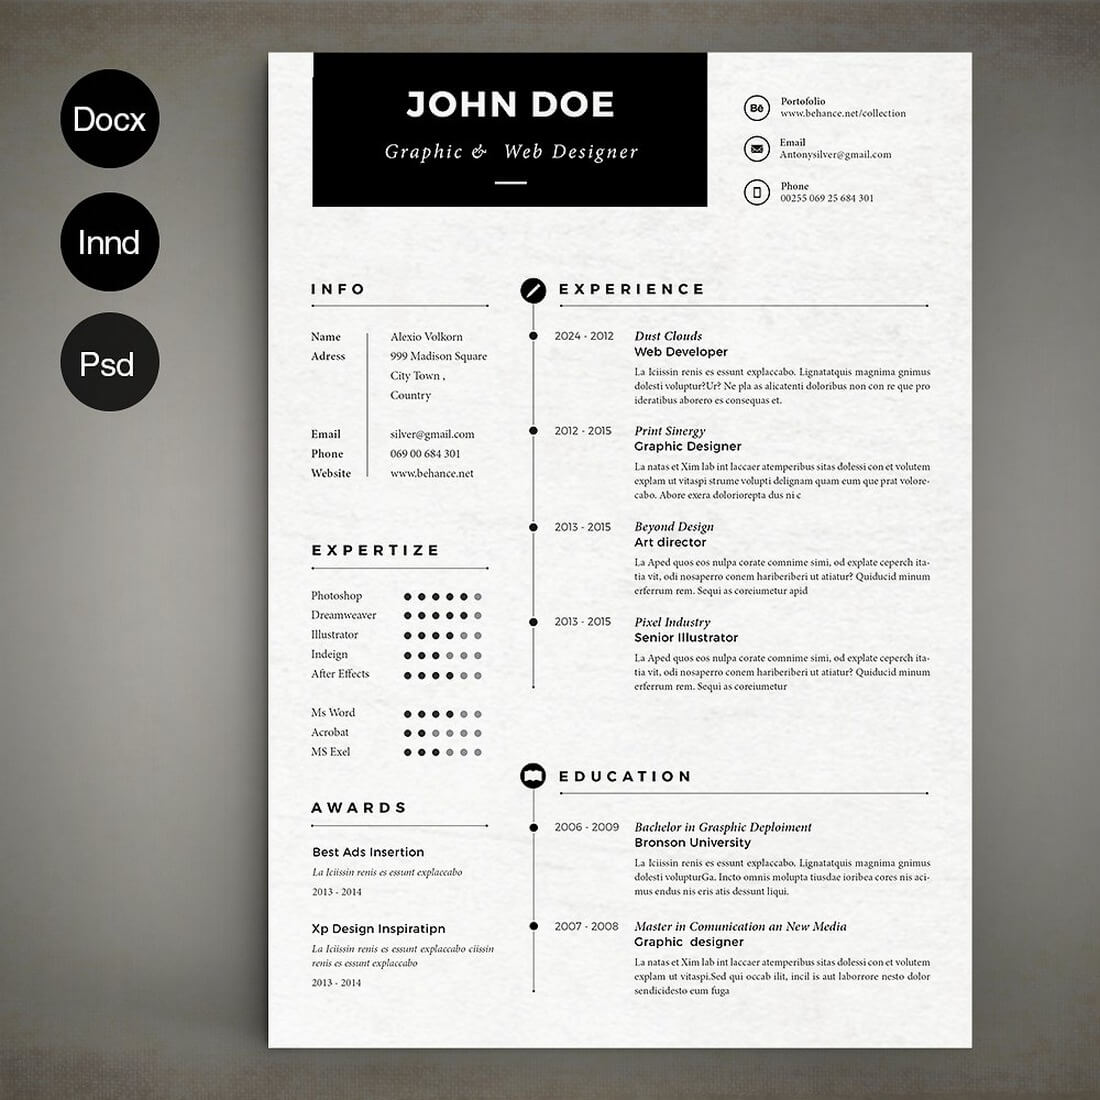 Wonderful 1 Page Resume Format Free Download Big 10 Envelope Template Regular 15 Year Old Resume Sample 18th Invitation Templates Old 1and1 Templates Brown2 Binder Spine Template The Best CV \u0026 Resume Templates: 50 Examples \u2013 Ok Huge